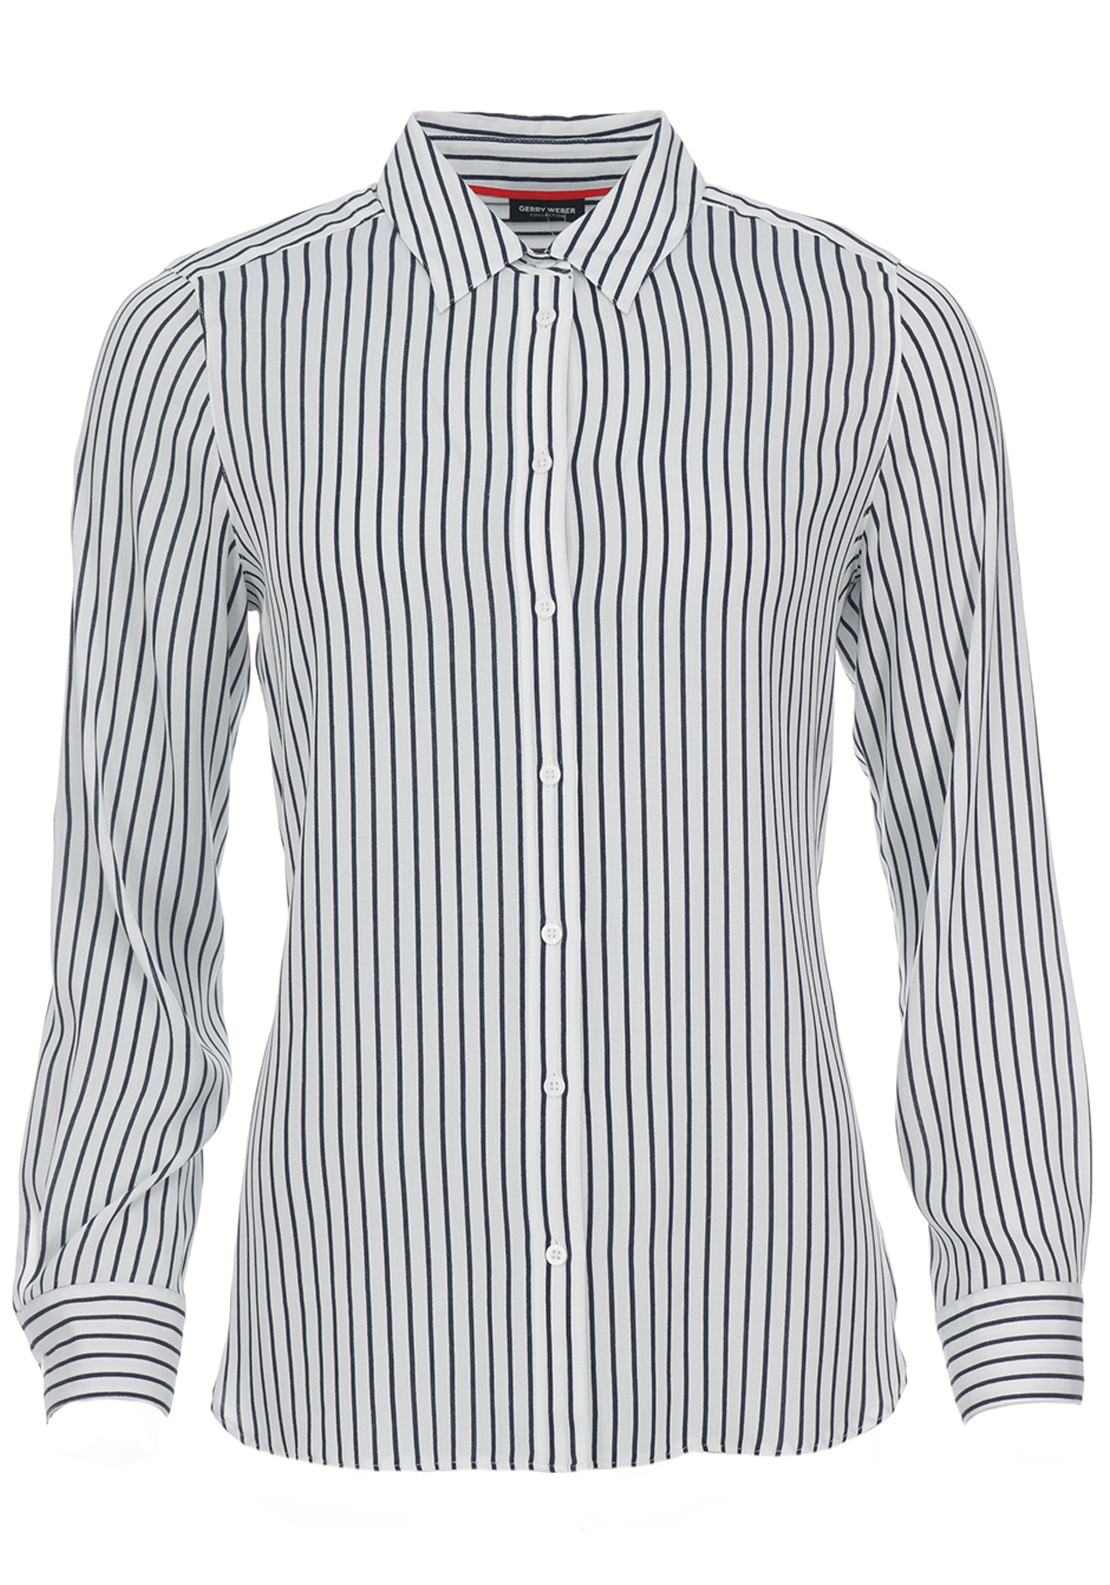 Gerry Weber Striped Blouse, White & Navy